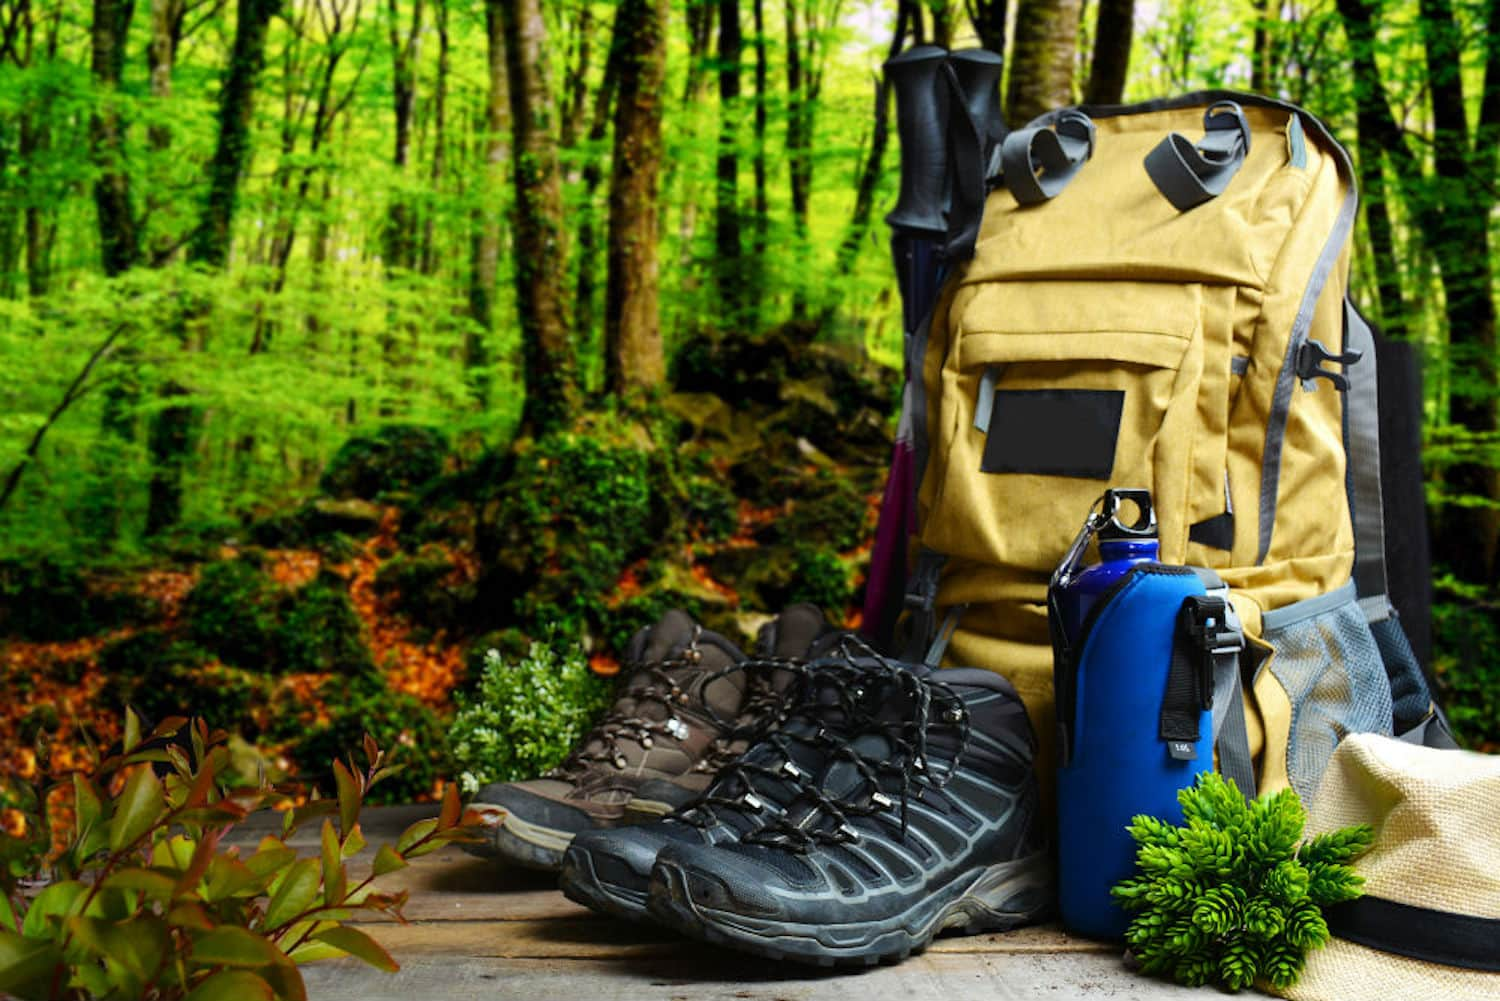 Hiking gear in the forest